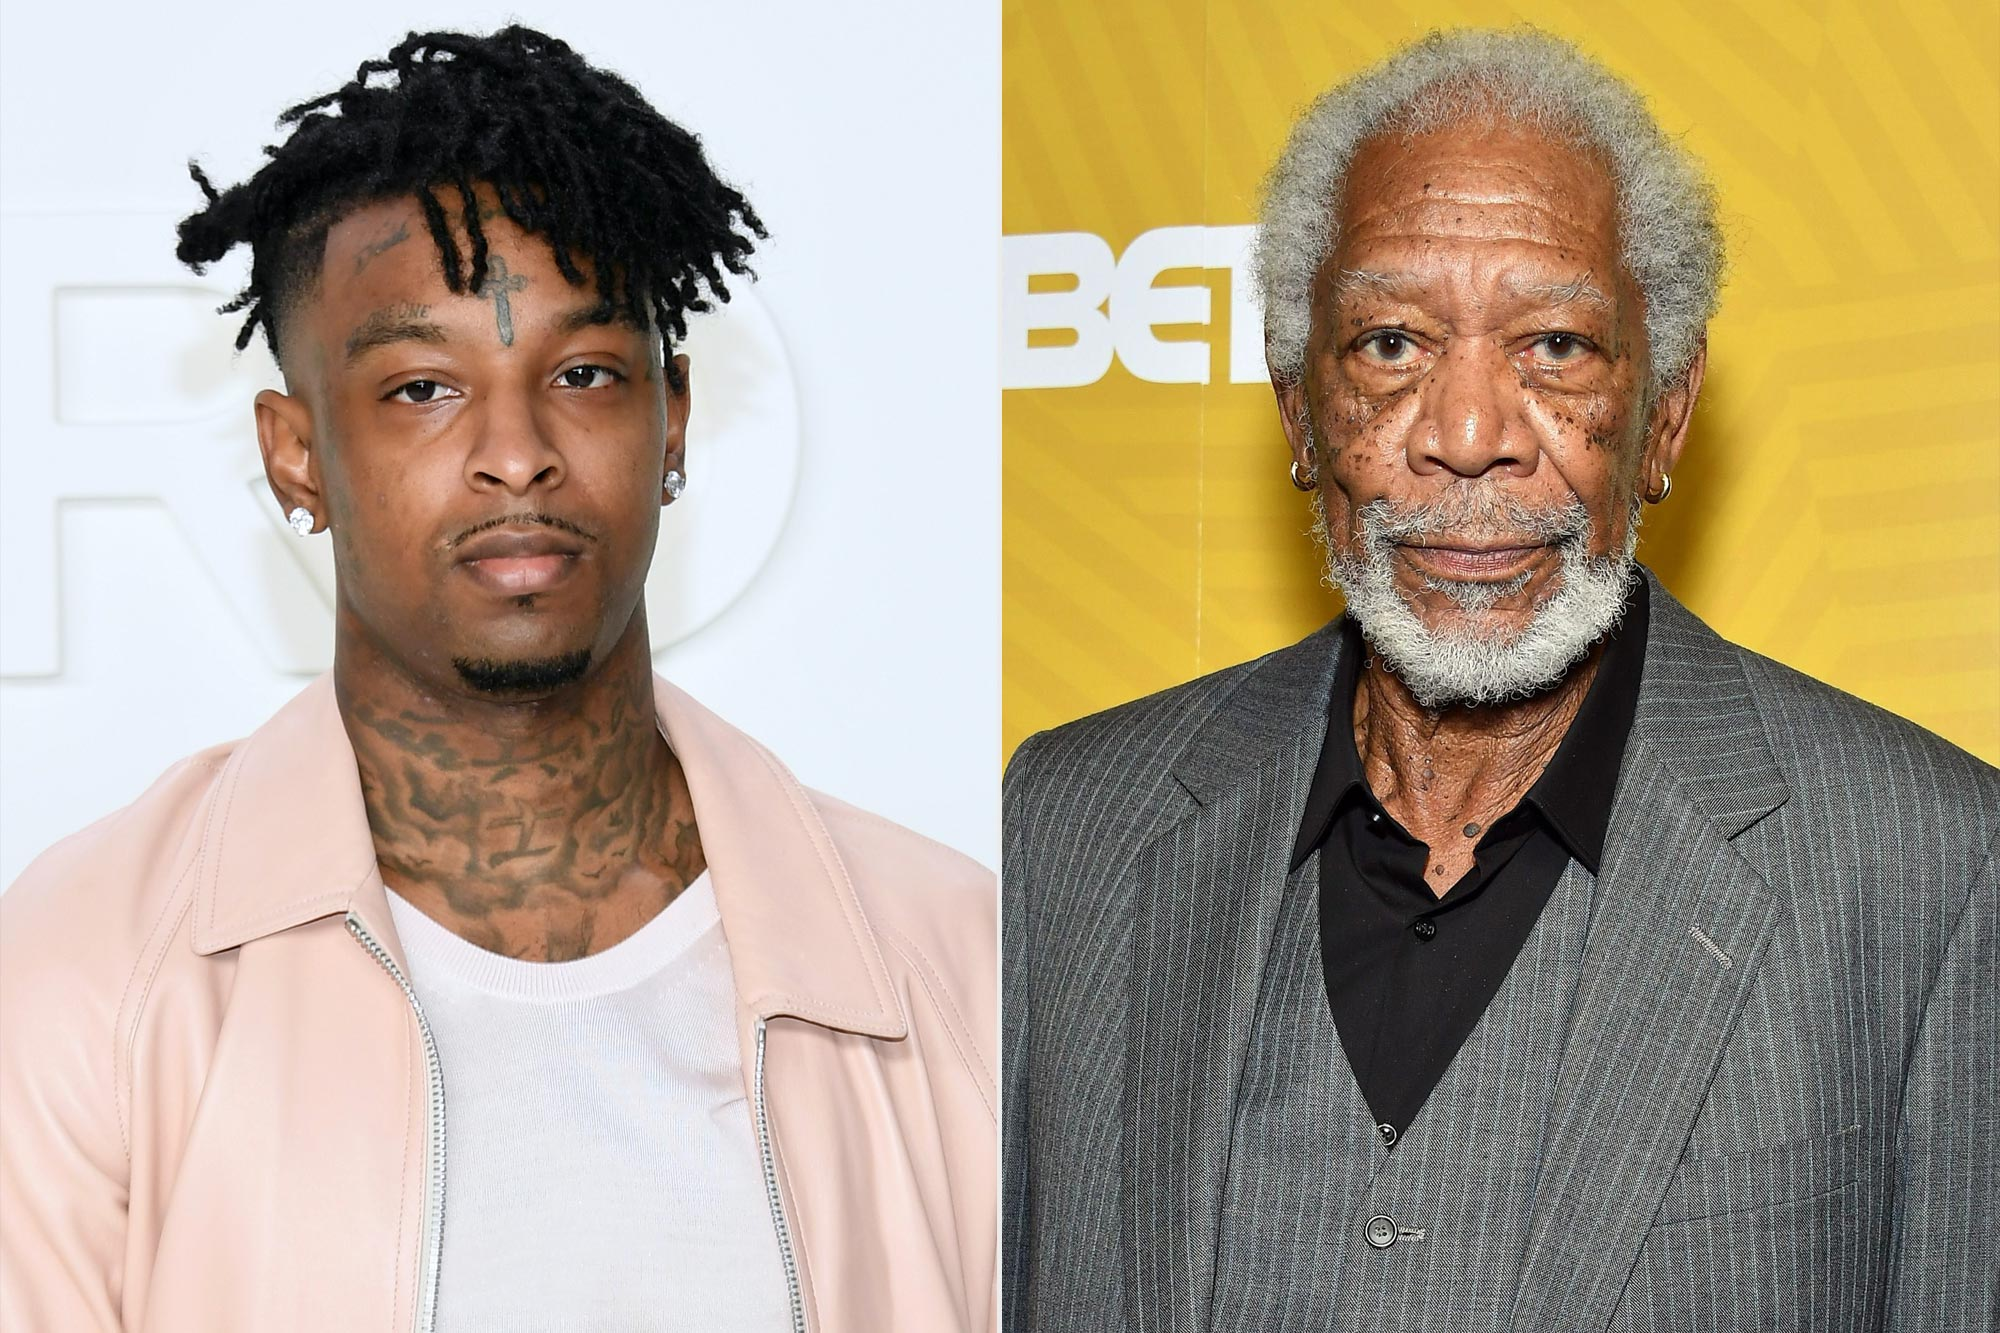 21 Savage; Morgan Freeman